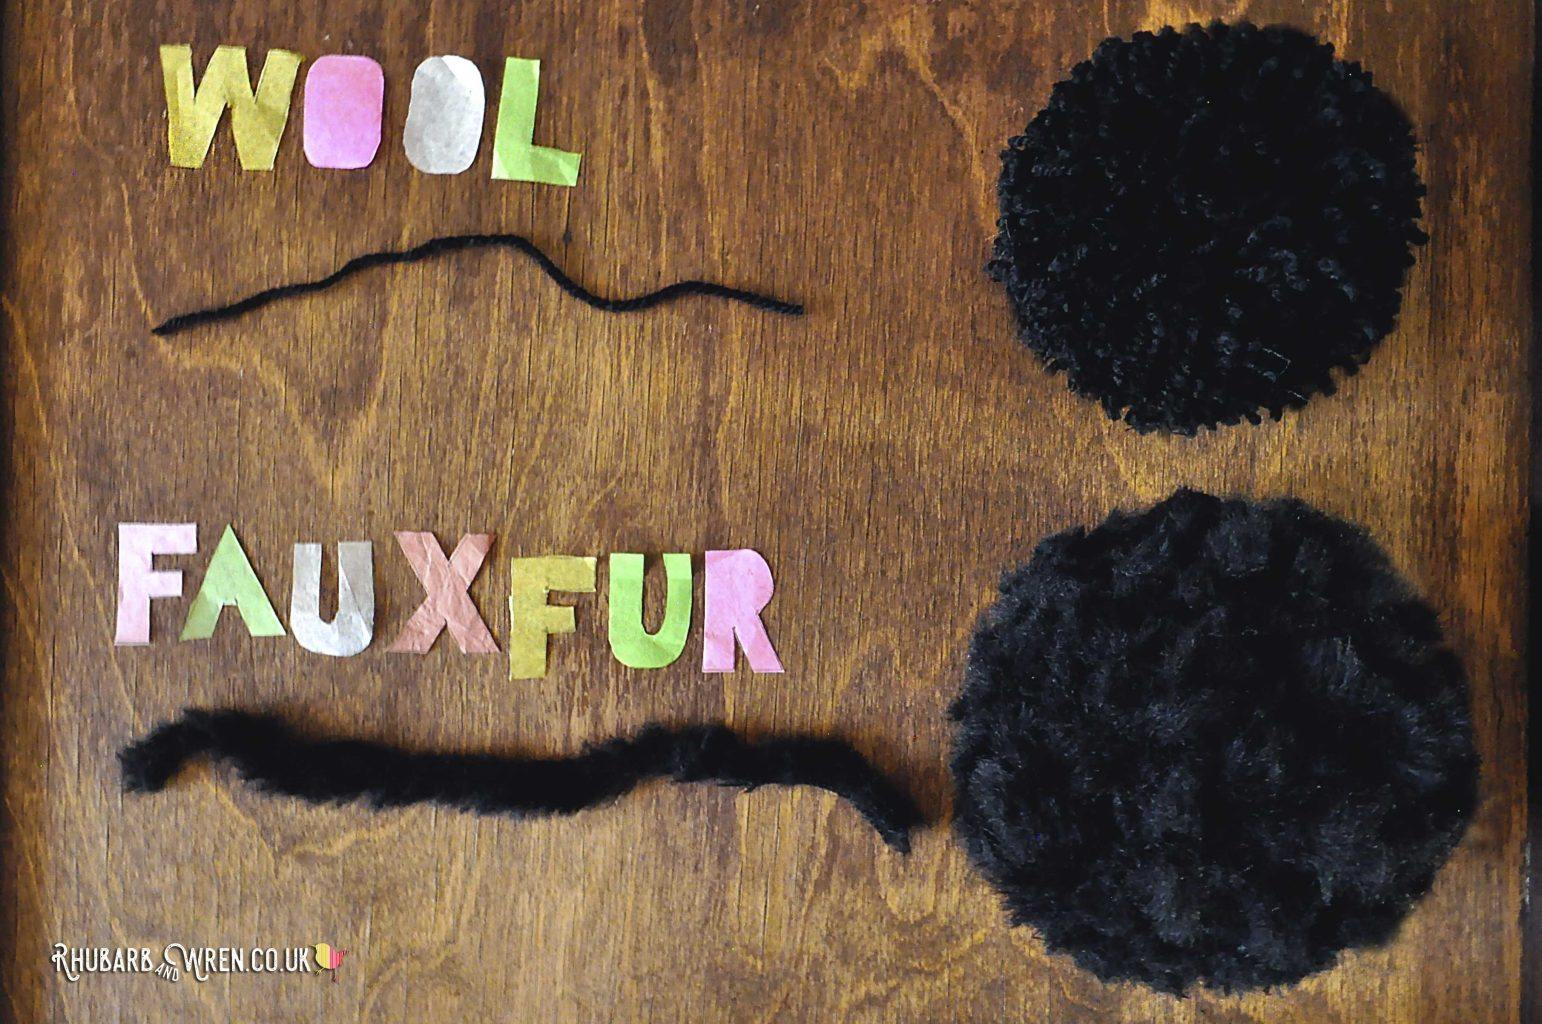 pompoms made from ordinary wool/yarn and faux fur wool/yarn